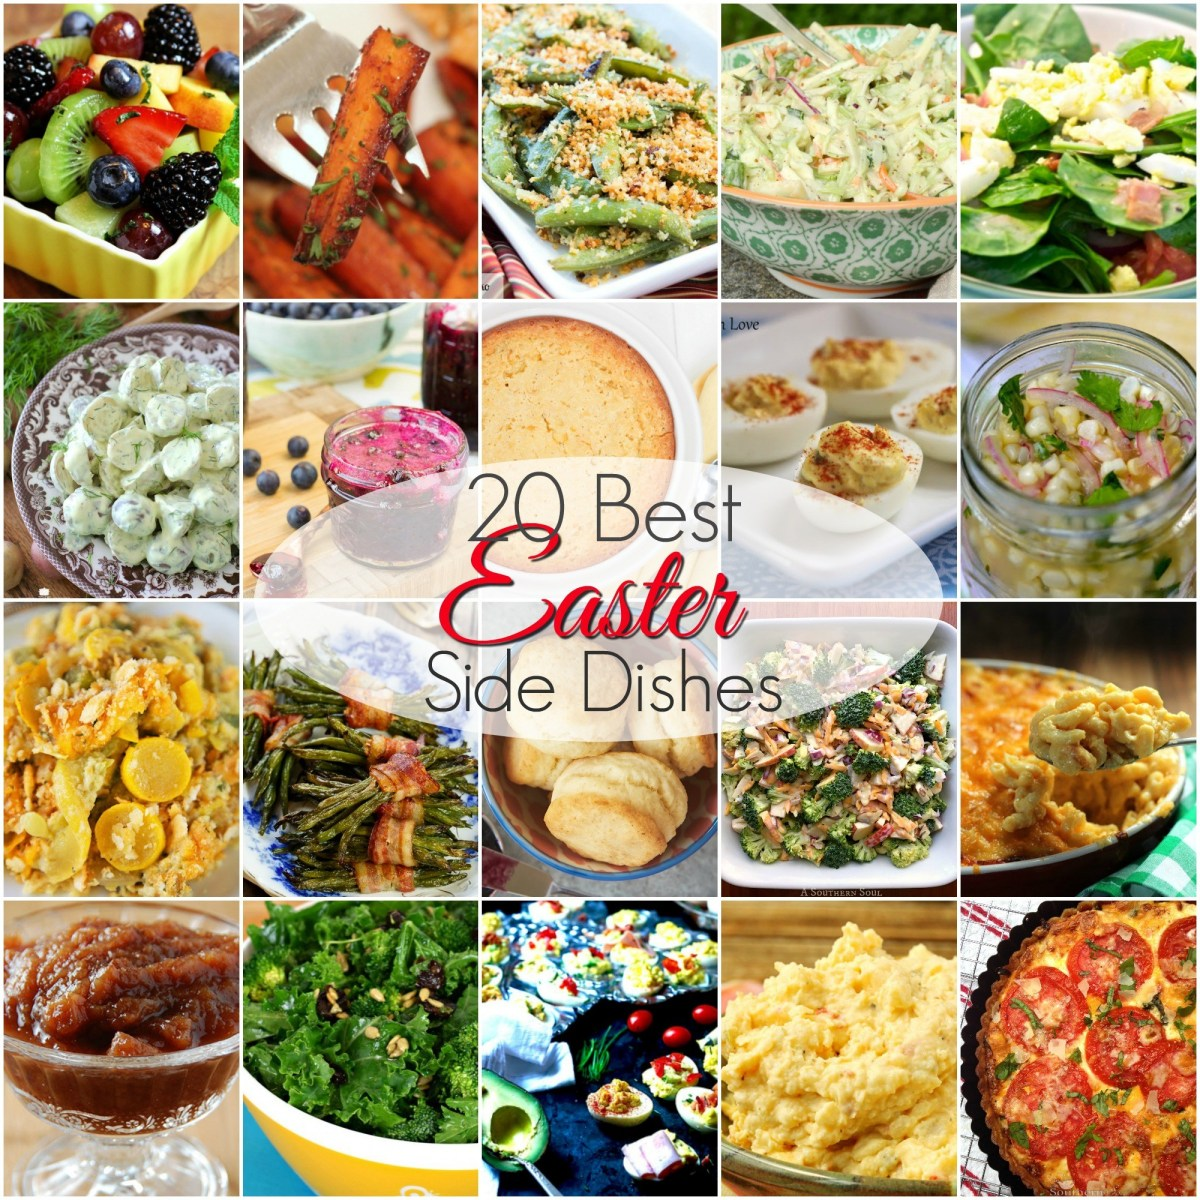 Sode Dishes: 20 BEST Easter Side Dishes